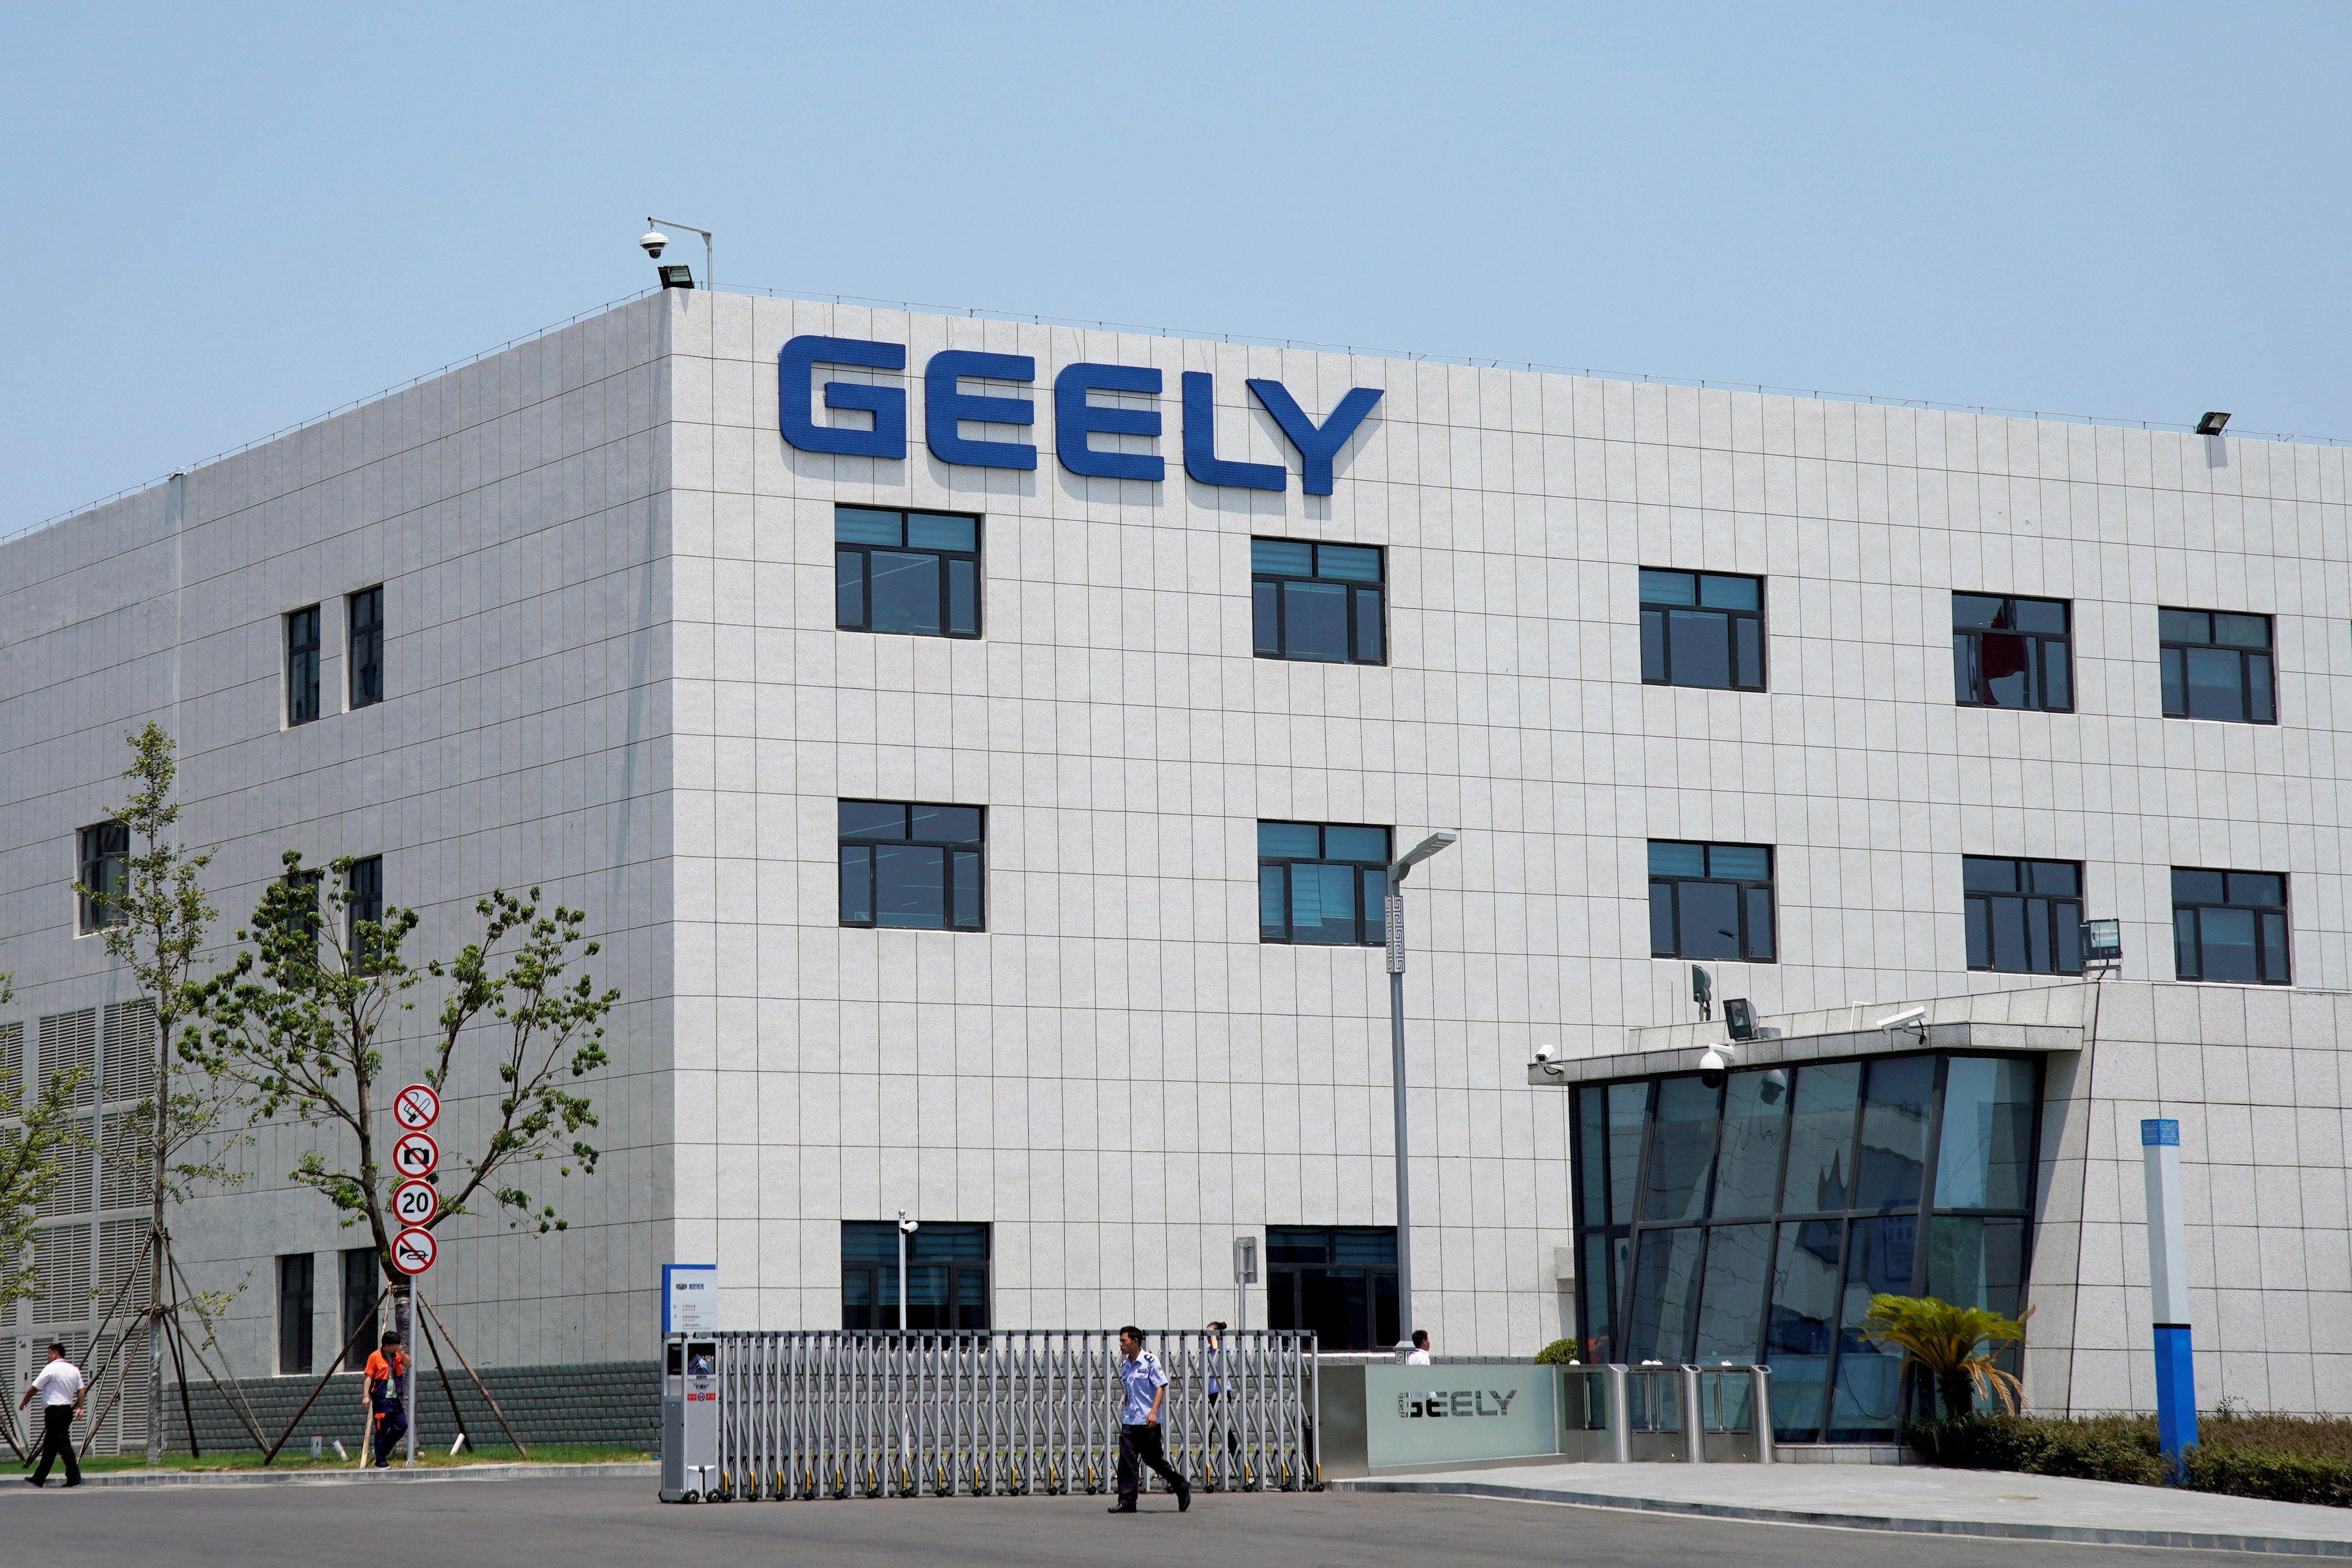 A building of the Geely Auto Research Institute is seen in Ningbo, Zhejiang province, China, Aug. 4, 2017. REUTERS/Aly Song